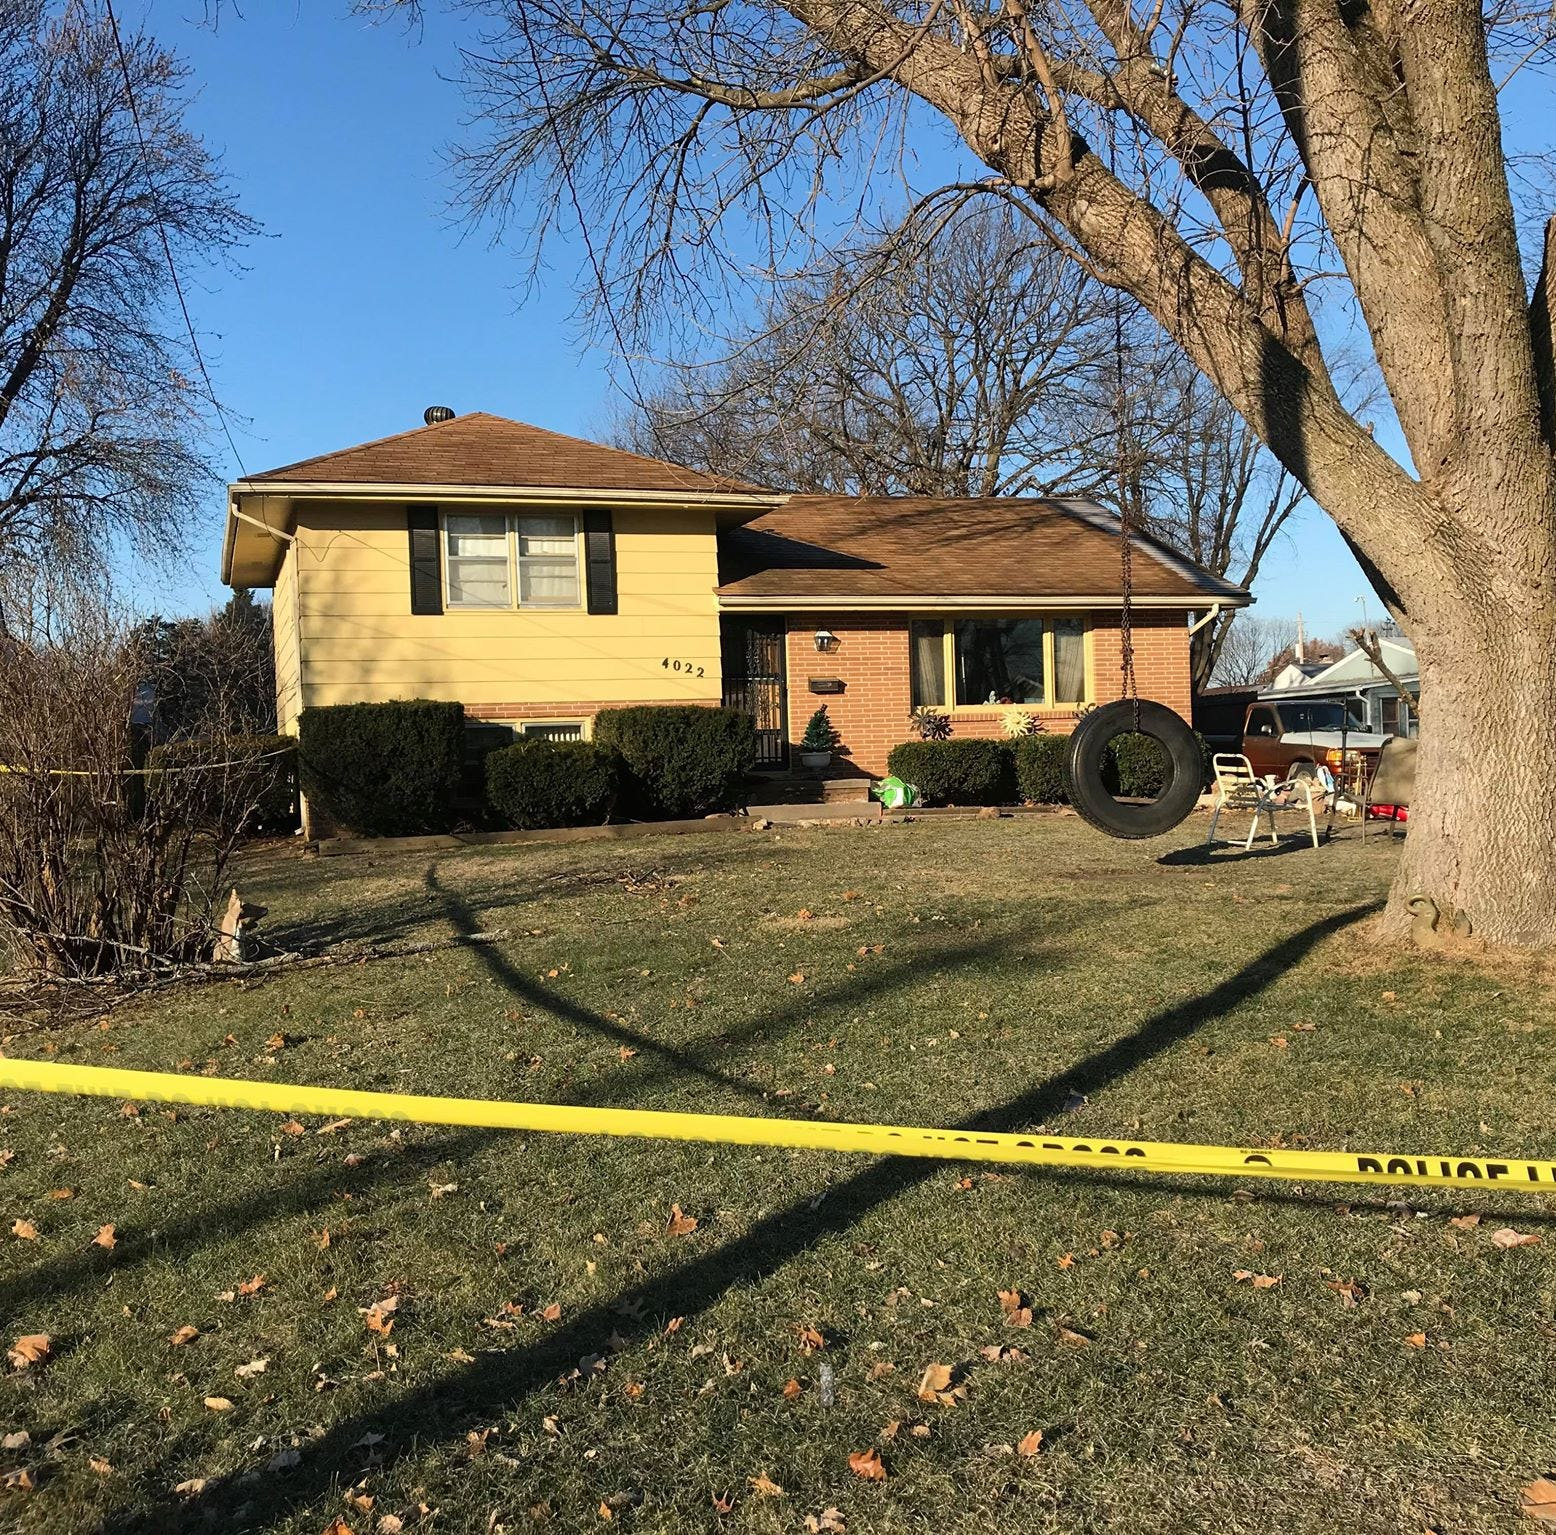 Police: Death investigation underway in Urbandale